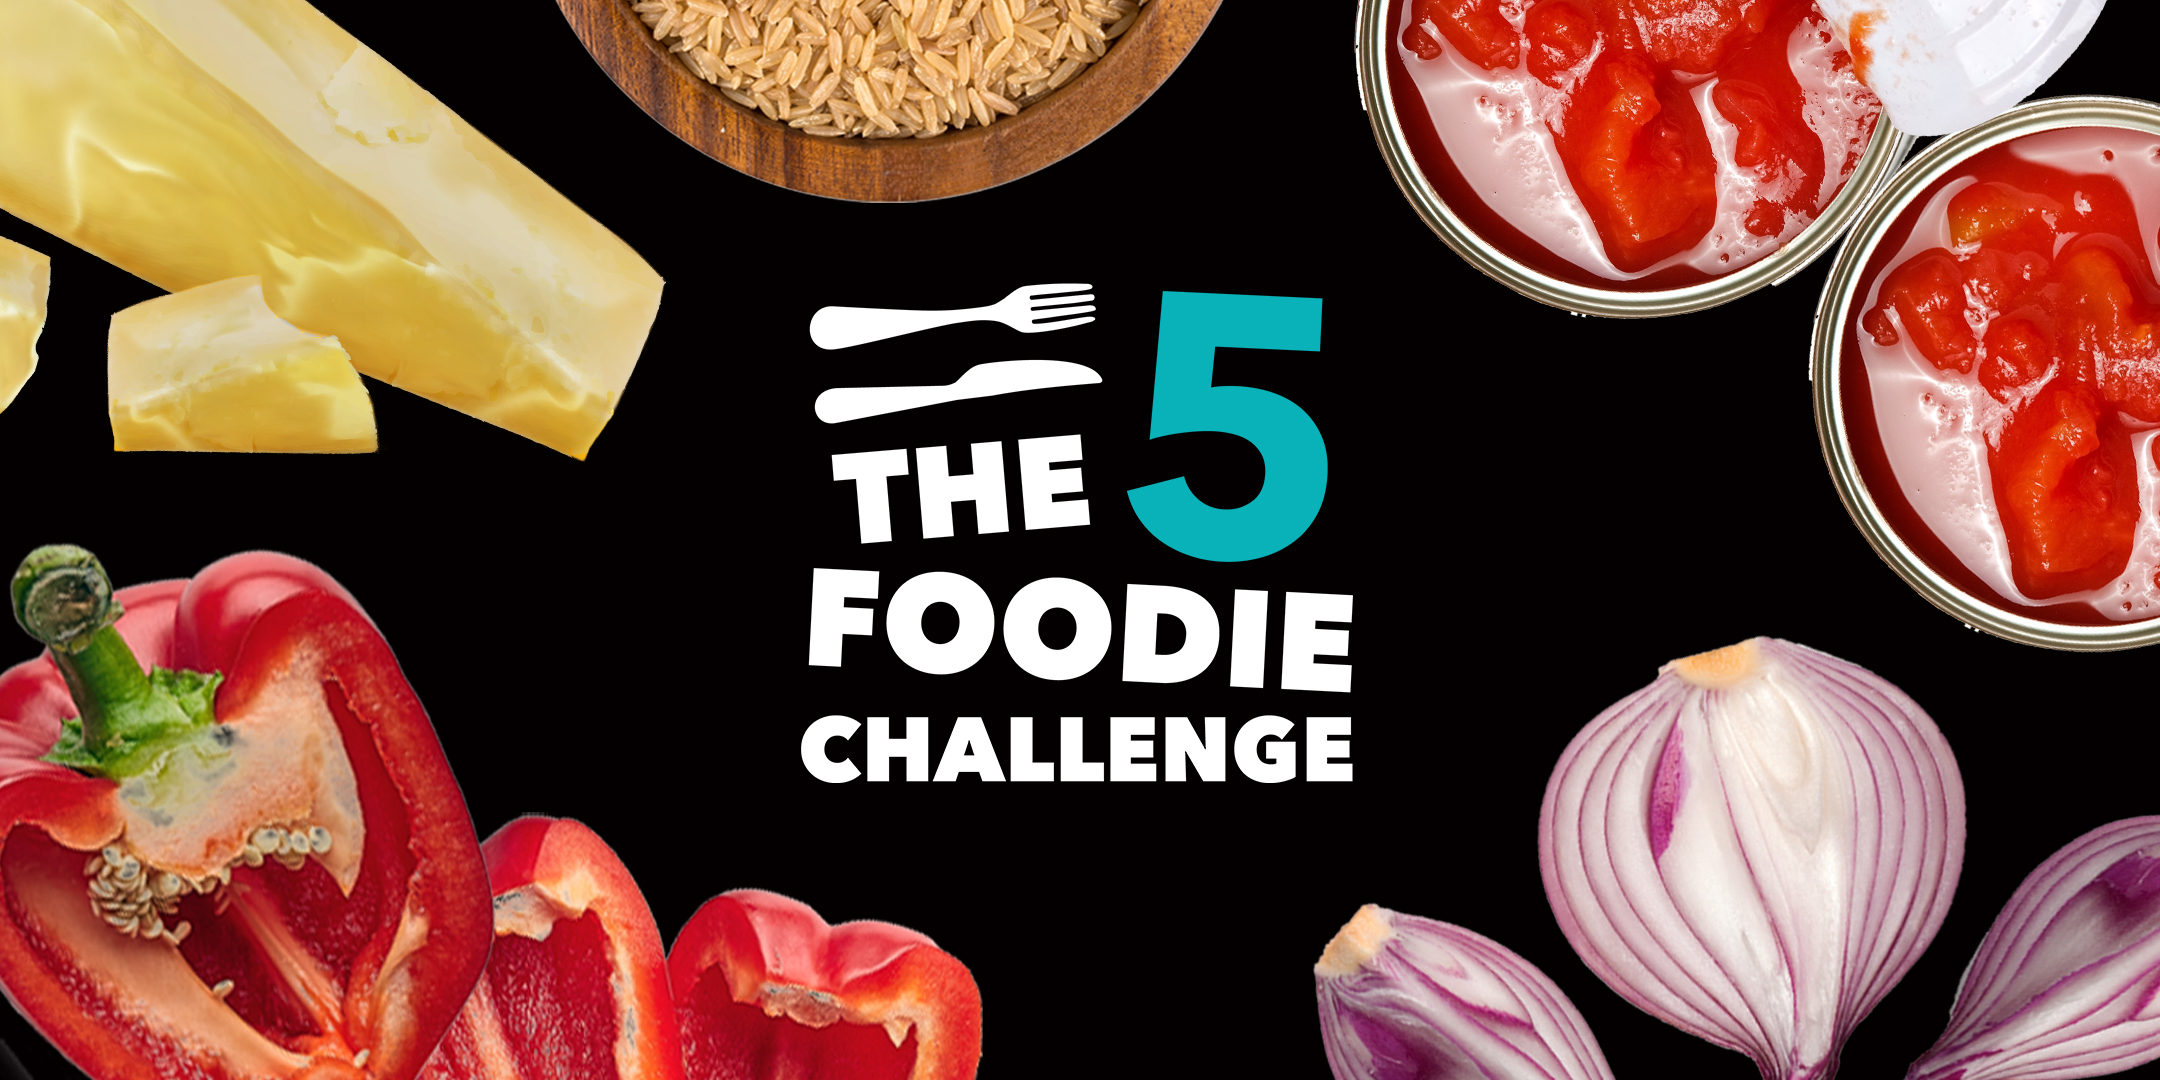 The 5 Foodie Challenge